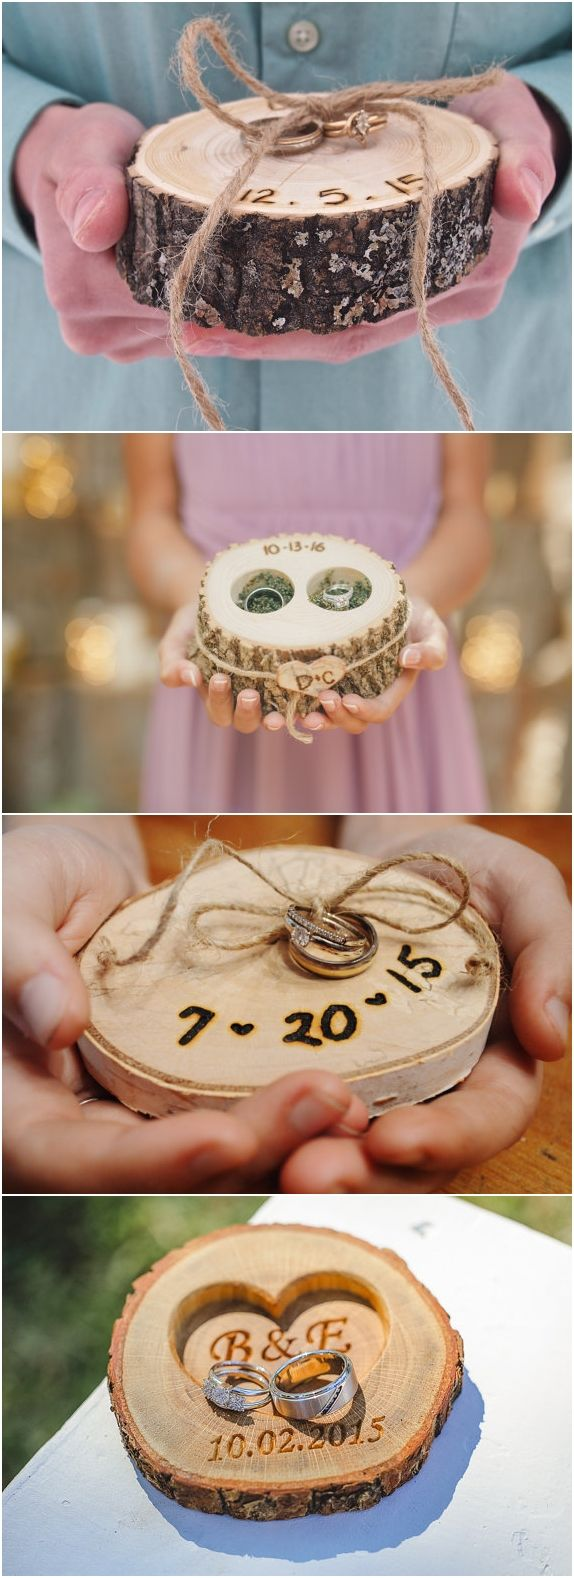 Wedding decorations royal blue october 2018  best Wedding dreams images on Pinterest  Engagements Rings and